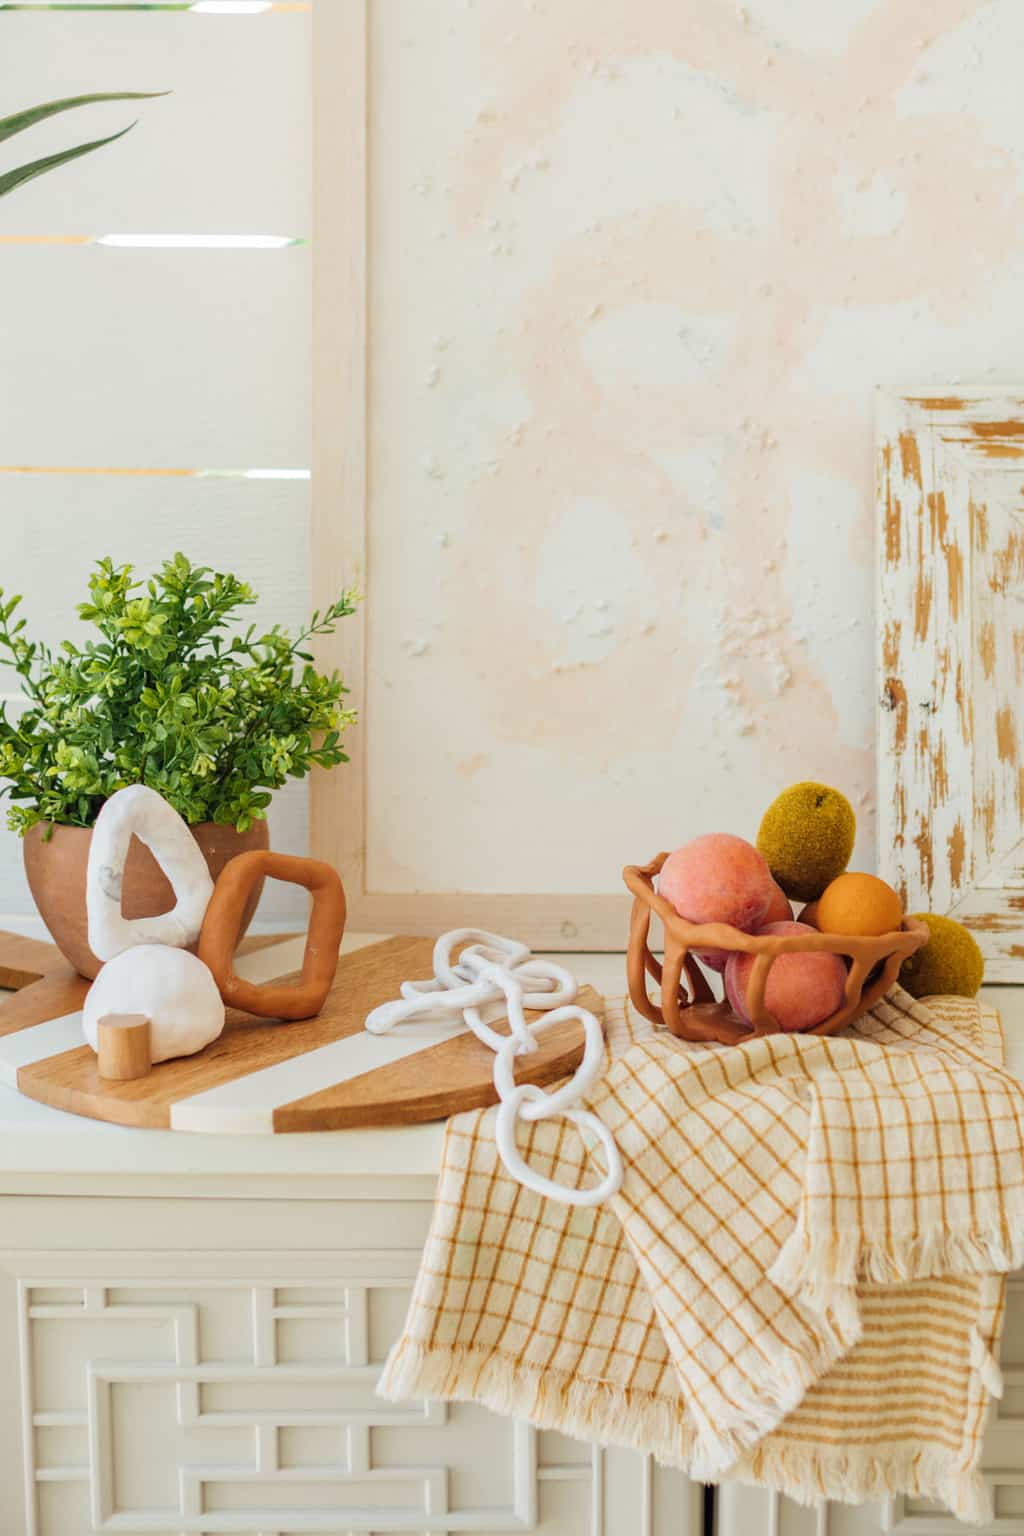 photo of clay home decor by top Houston lifestyle blogger Ashley Rose of Sugar & Cloth